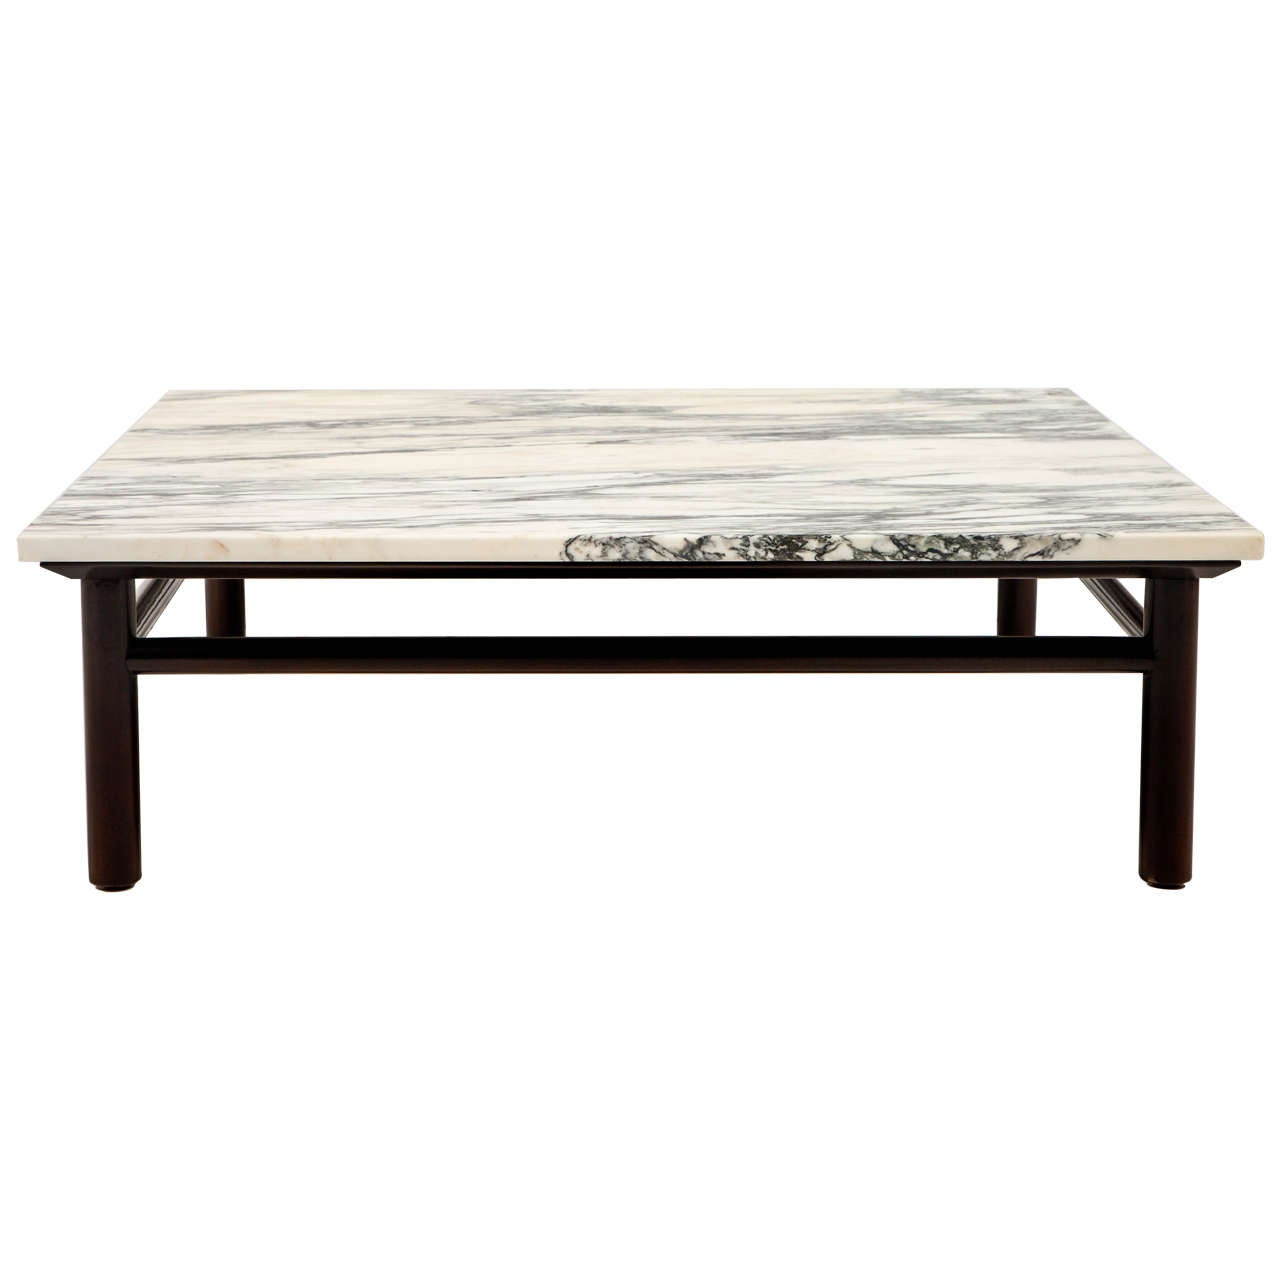 T.H. Robsjohn-Gibbings walnut and marble coffee table, 1950s